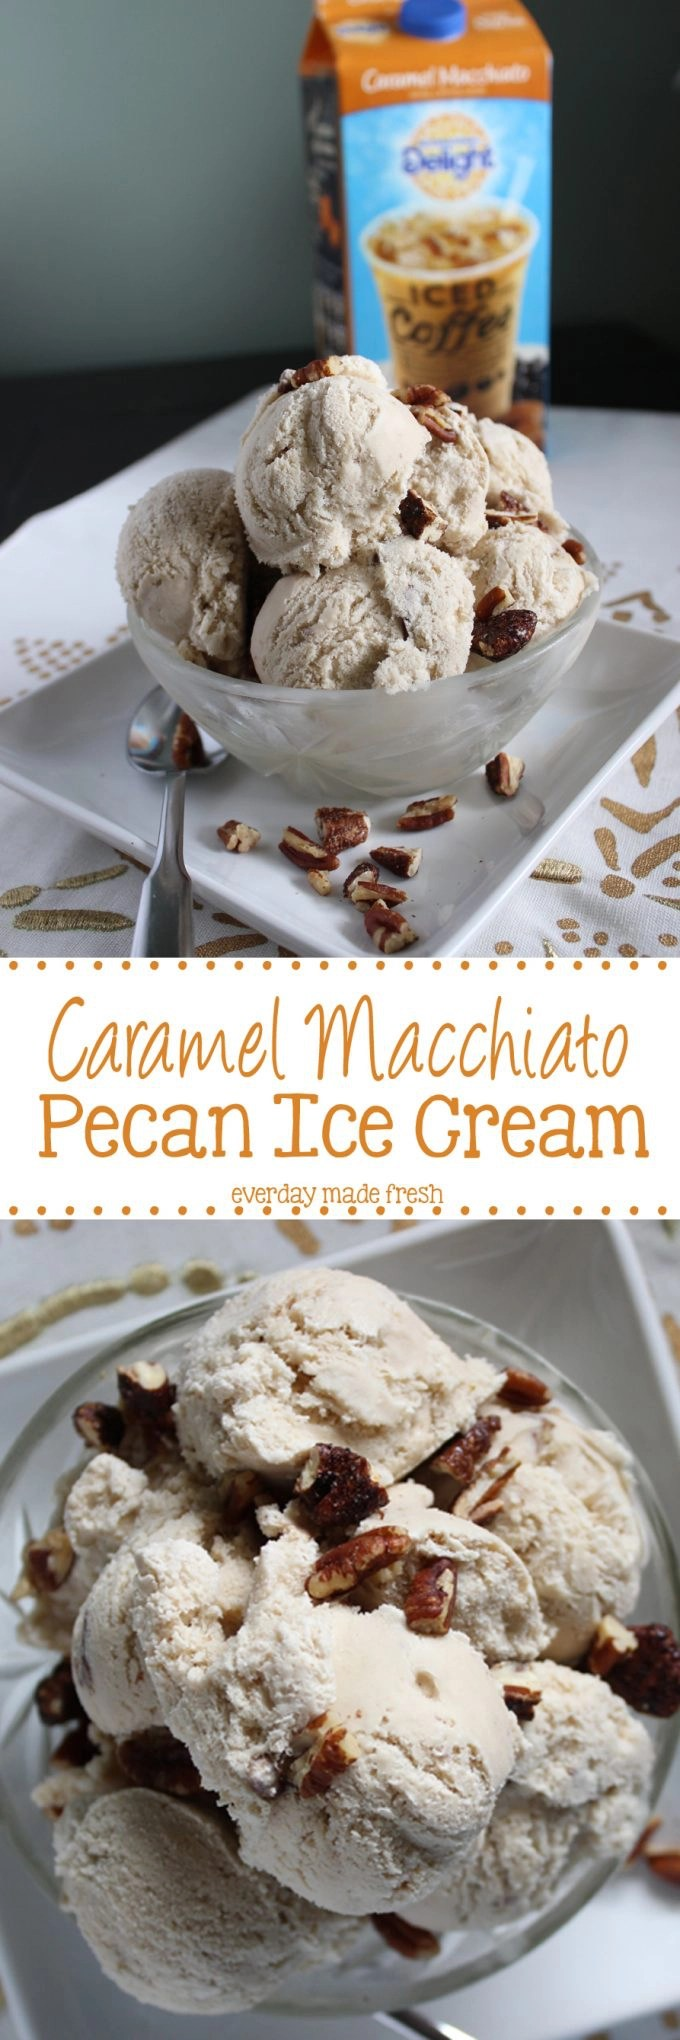 Caramel Macchiato Pecan Ice Cream reminds you of fall, but will keep you cool in the sweltering heat! #FoundMyDelight #ad | EverydayMadeFresh.com